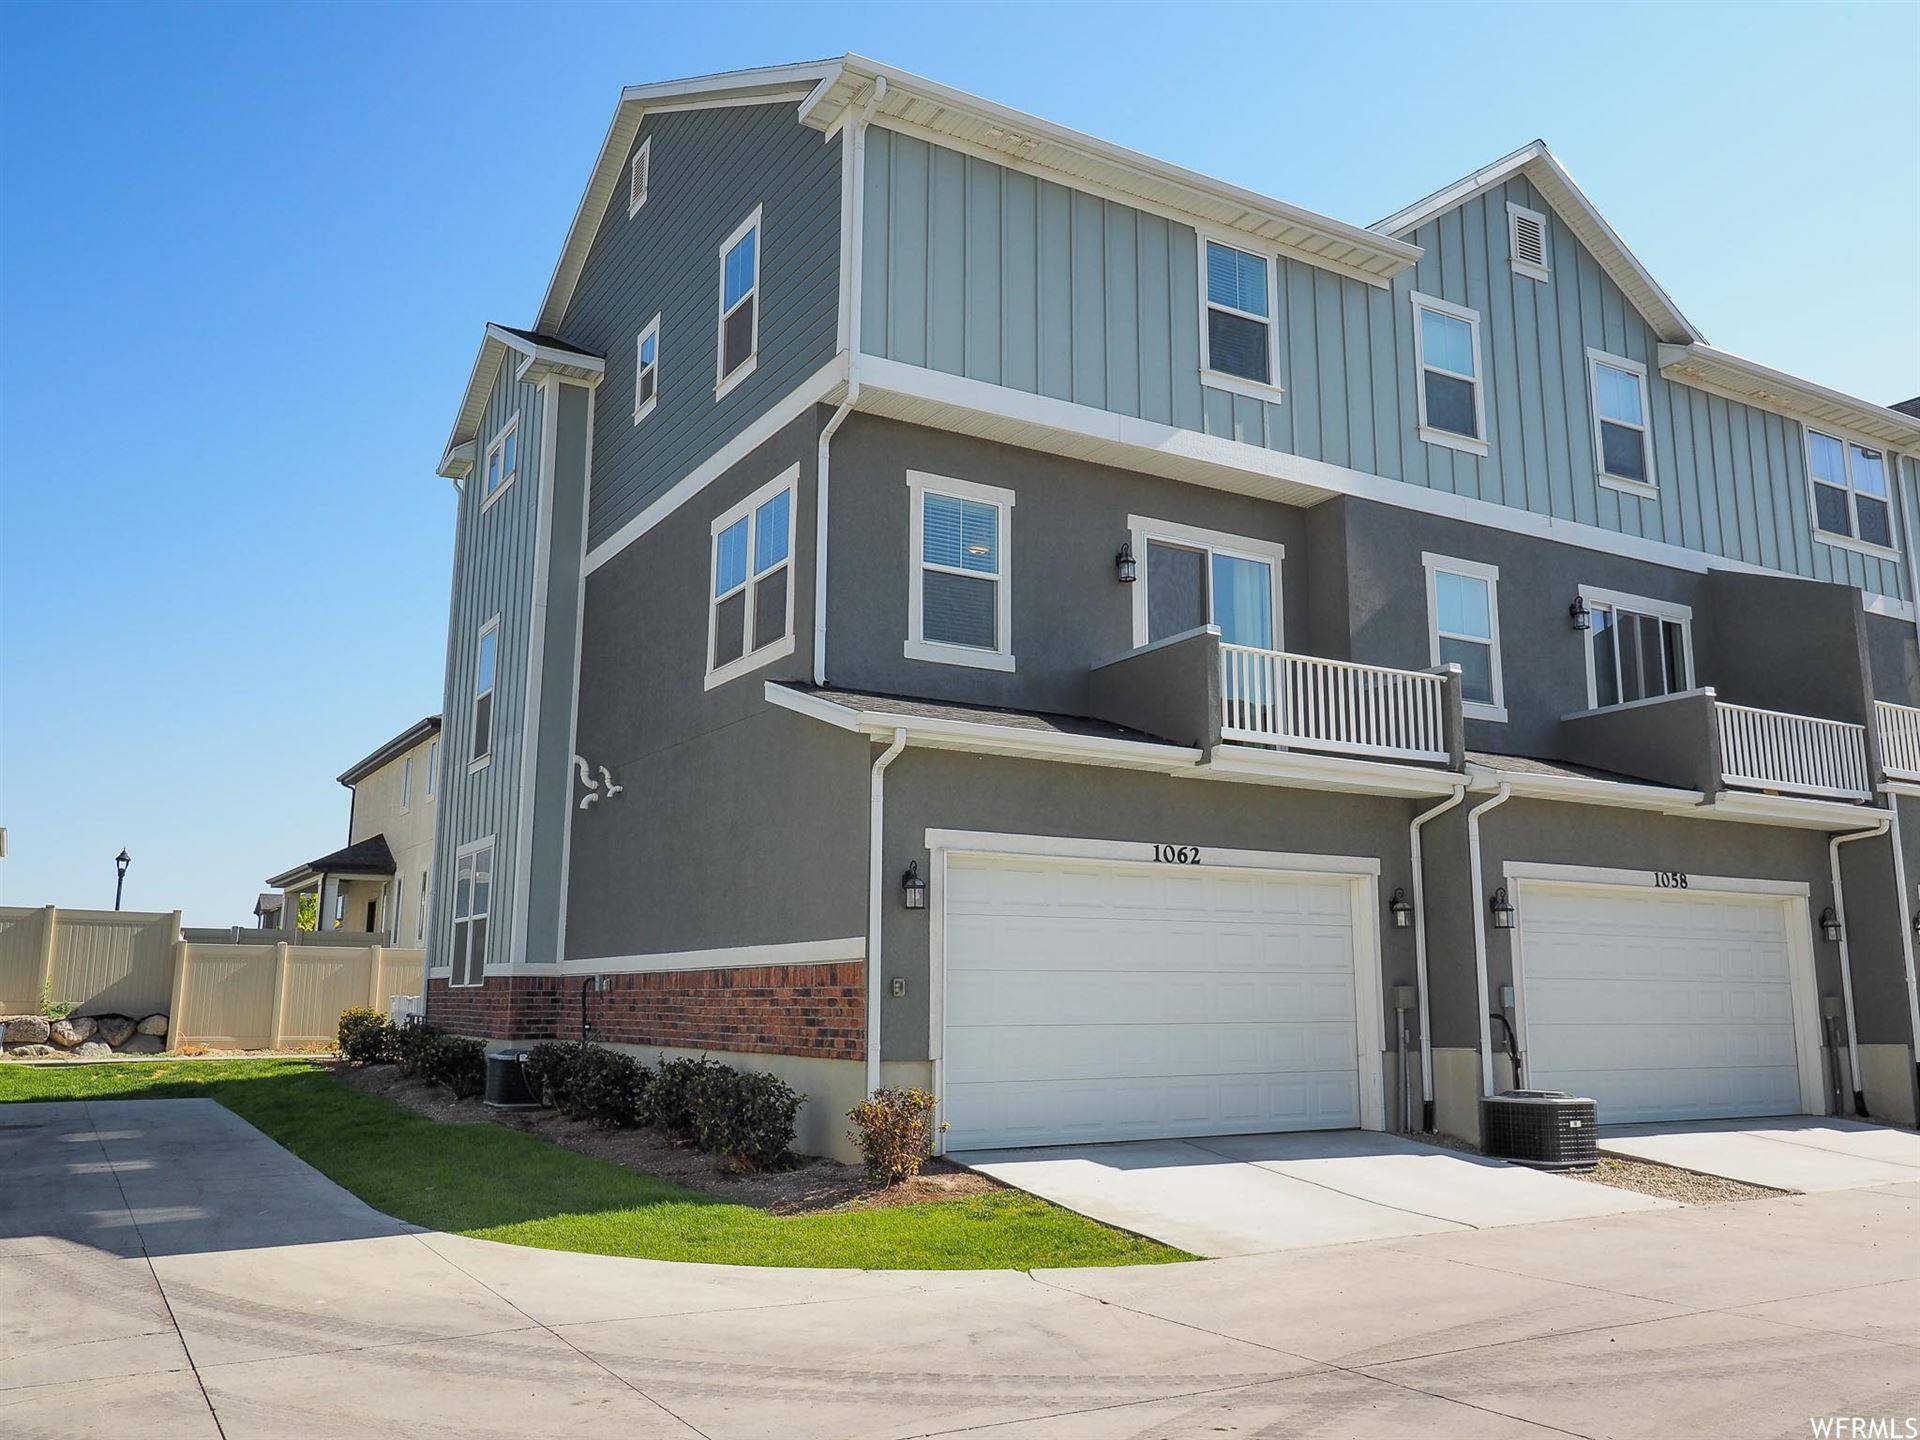 Photo of 1062 W PAINTED HORSE LN, Bluffdale, UT 84065 (MLS # 1757508)